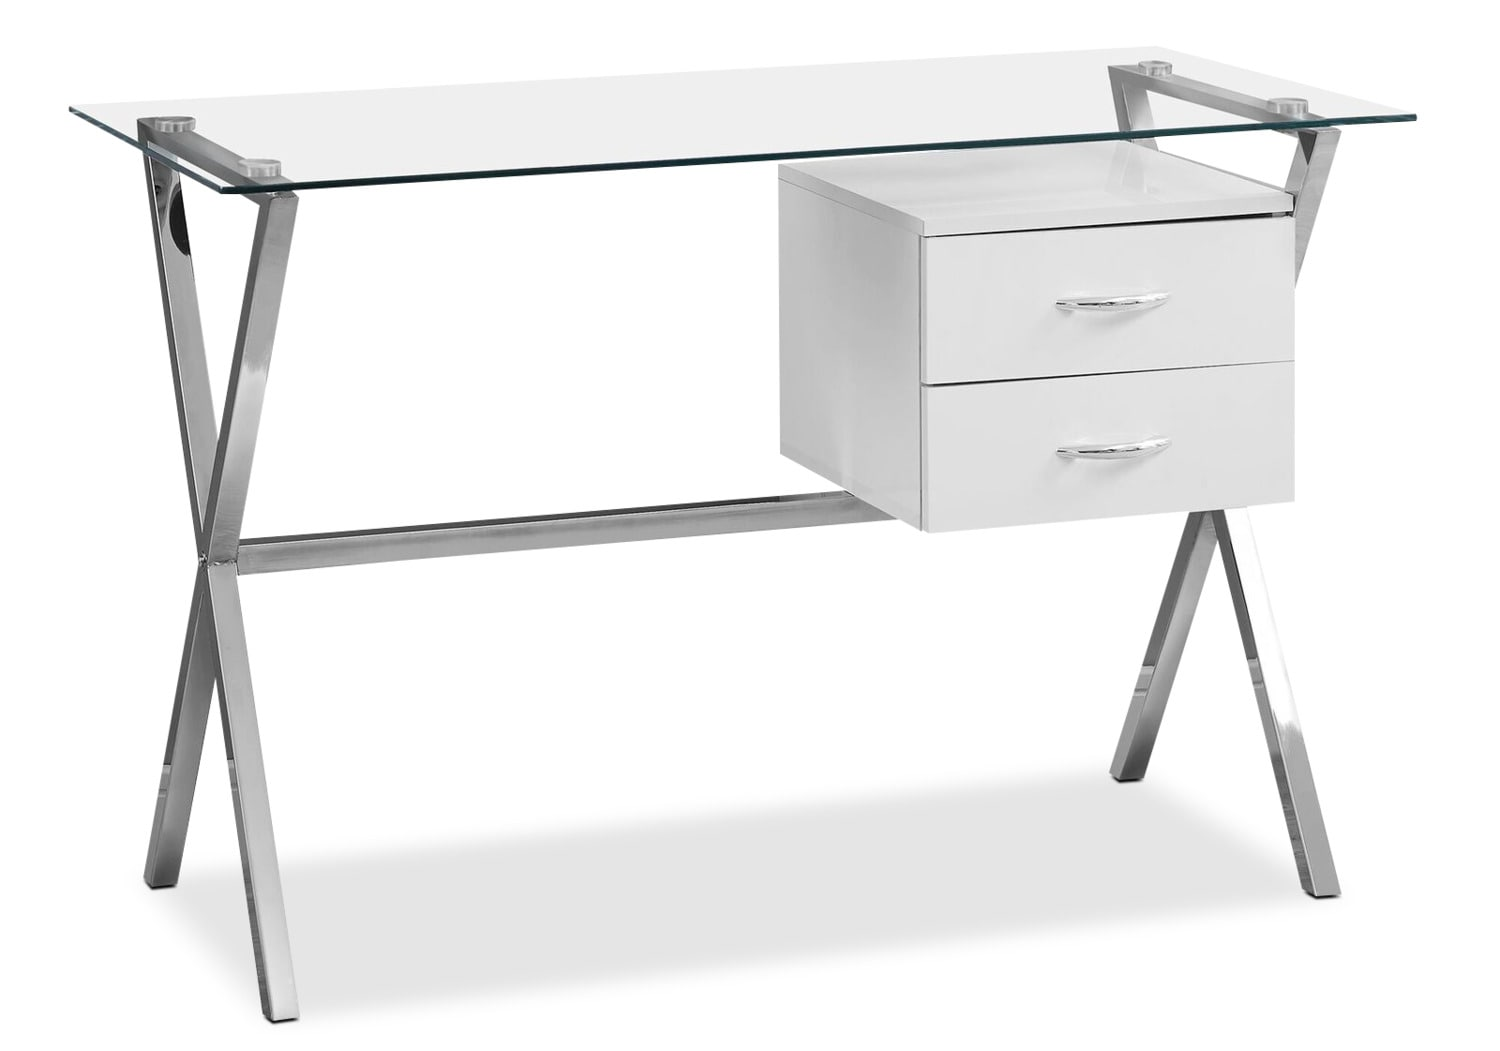 Home Office Furniture - Alexis Desk - Glossy White